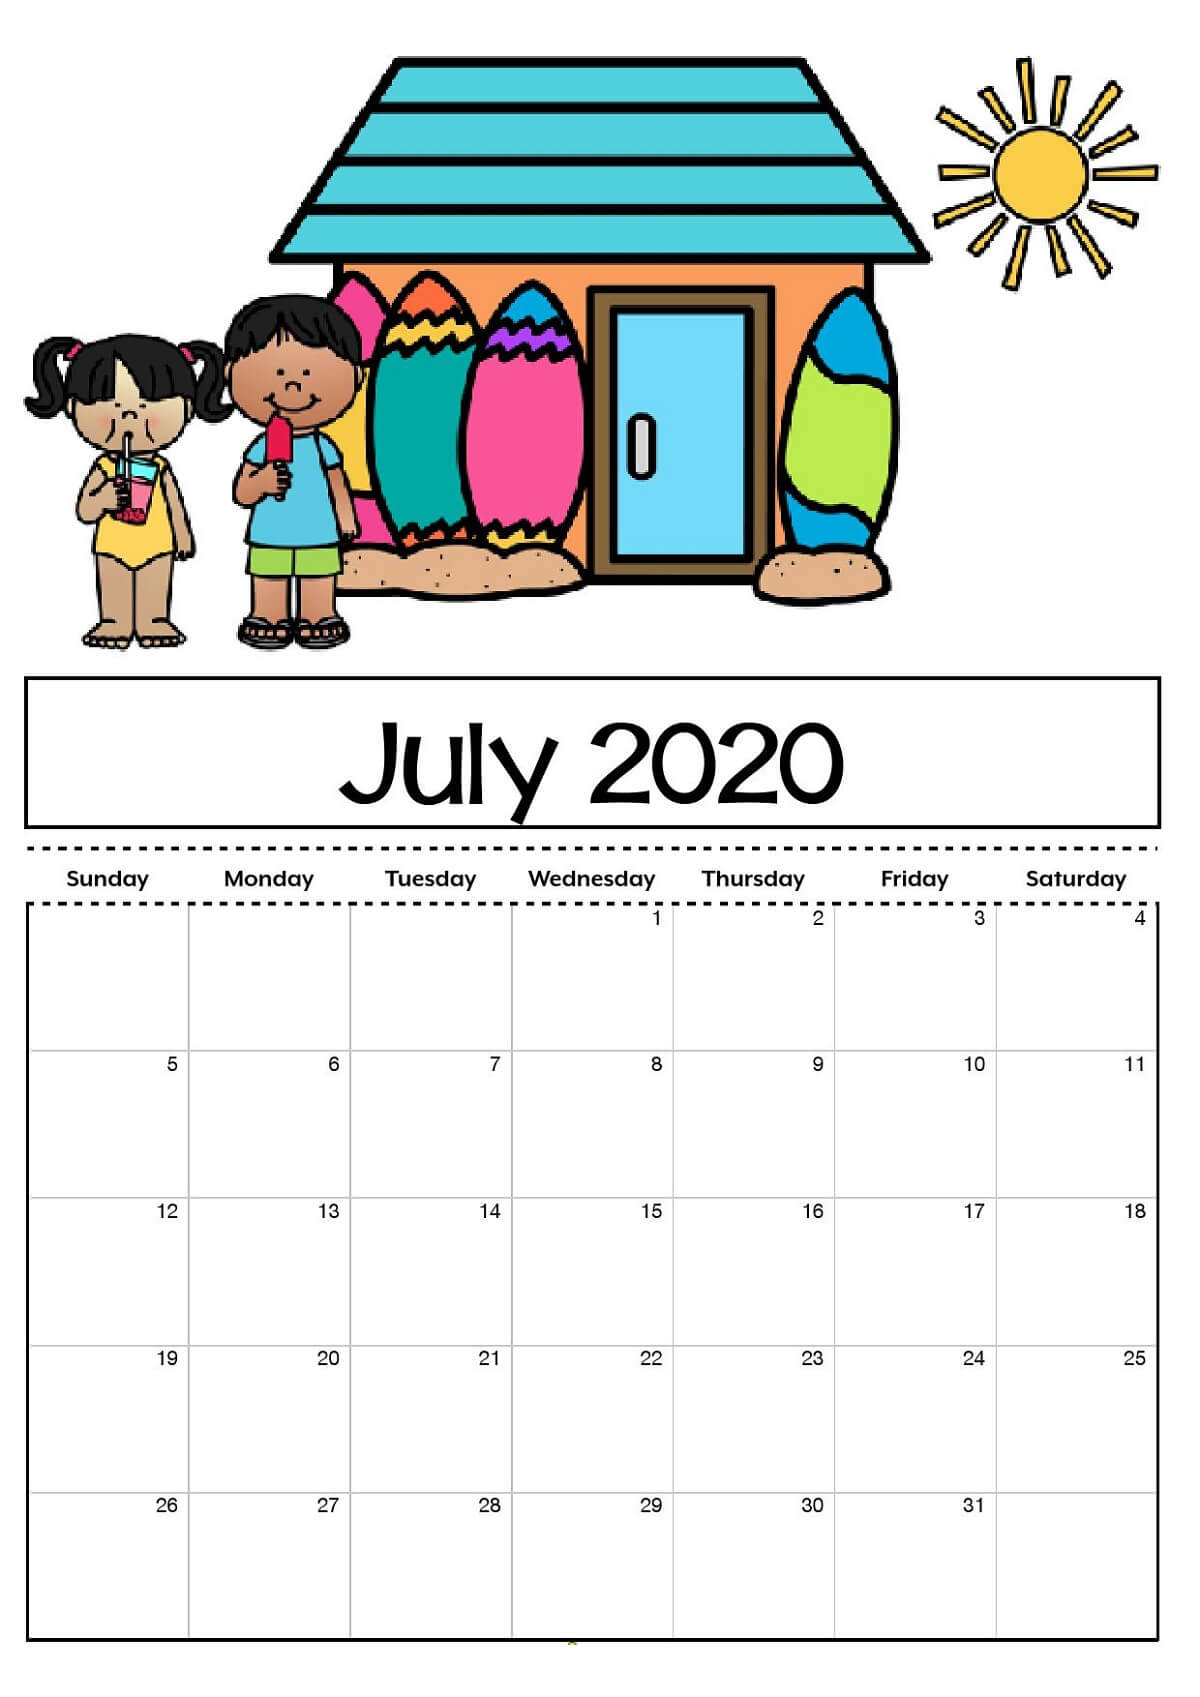 Free Printable Calendar Templates 2020 For Kids In Home With Blank Calendar Template For Kids